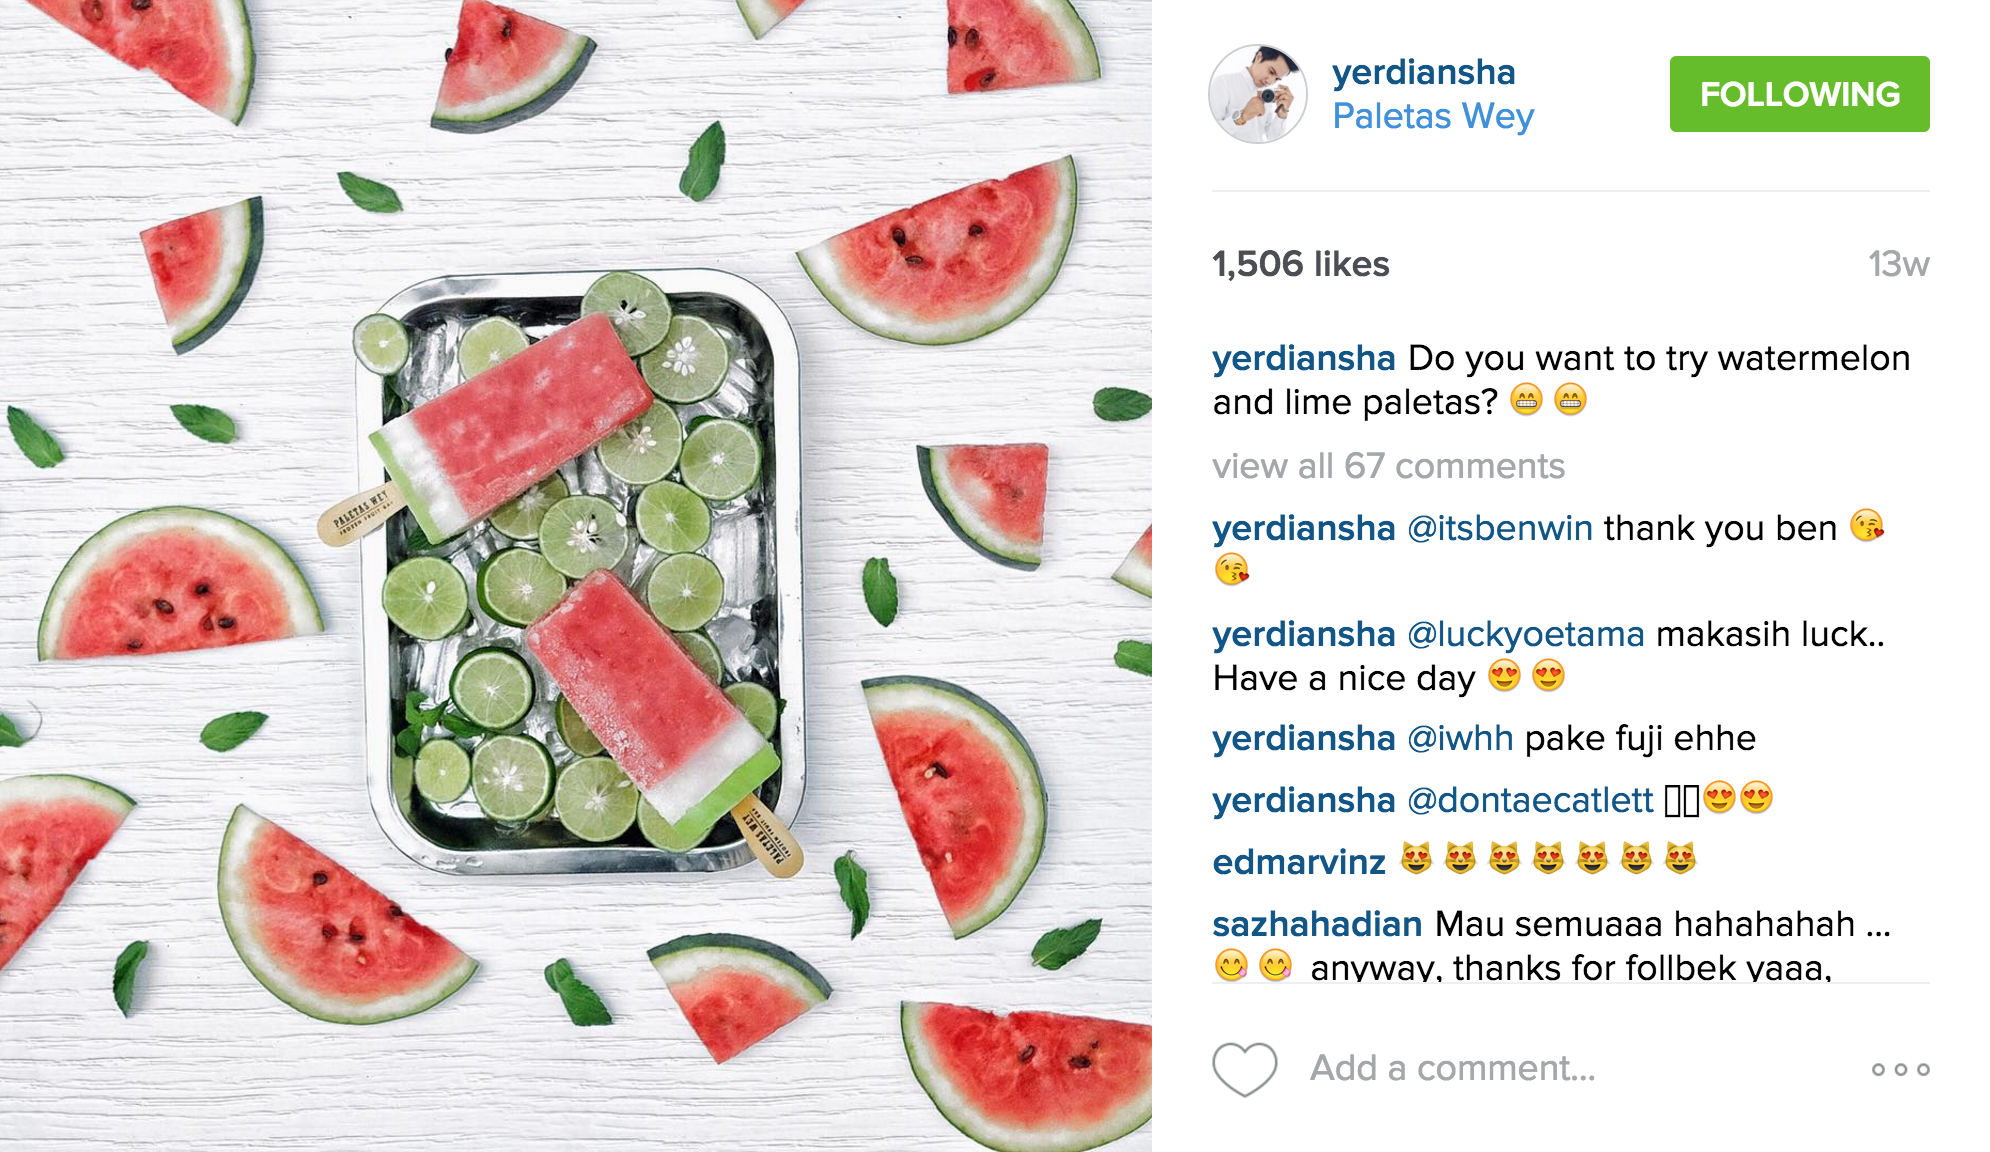 Yerdiansha's  instagram  has an impressive feed filled with clean imagery of festive meals and fruity delights such as the watermelon & lime paletas as shown above.